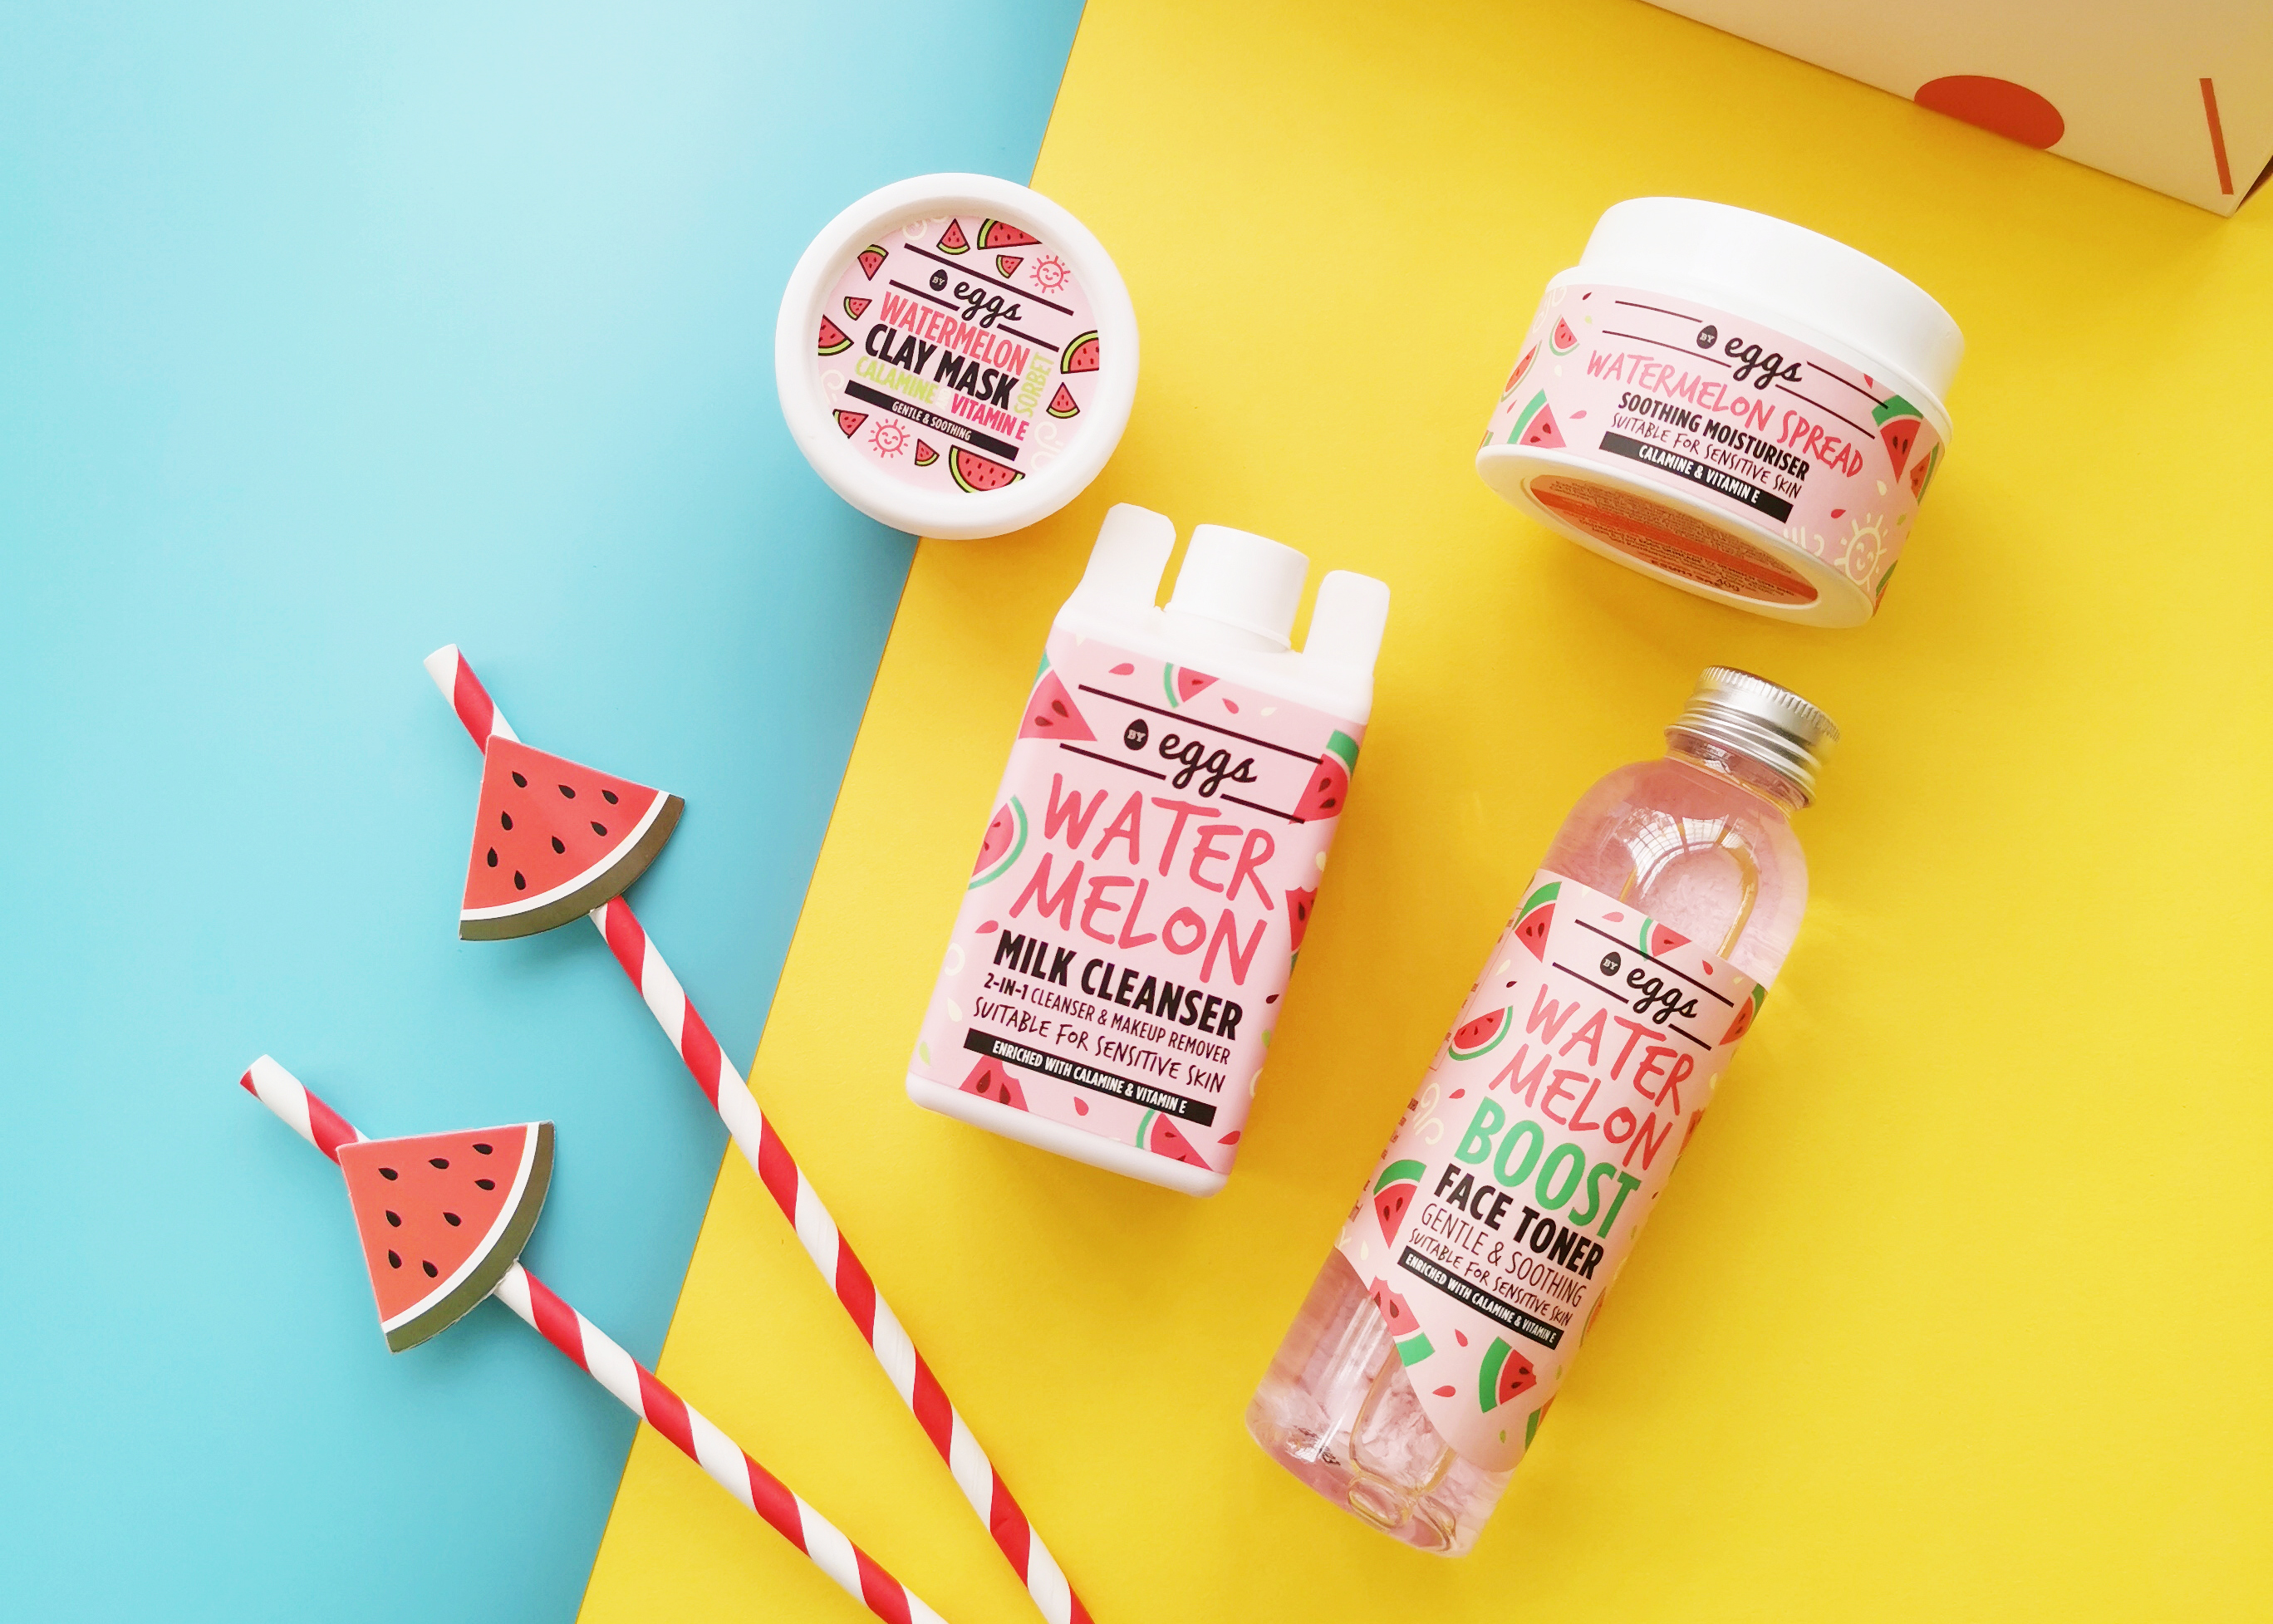 Watermelon Skincare